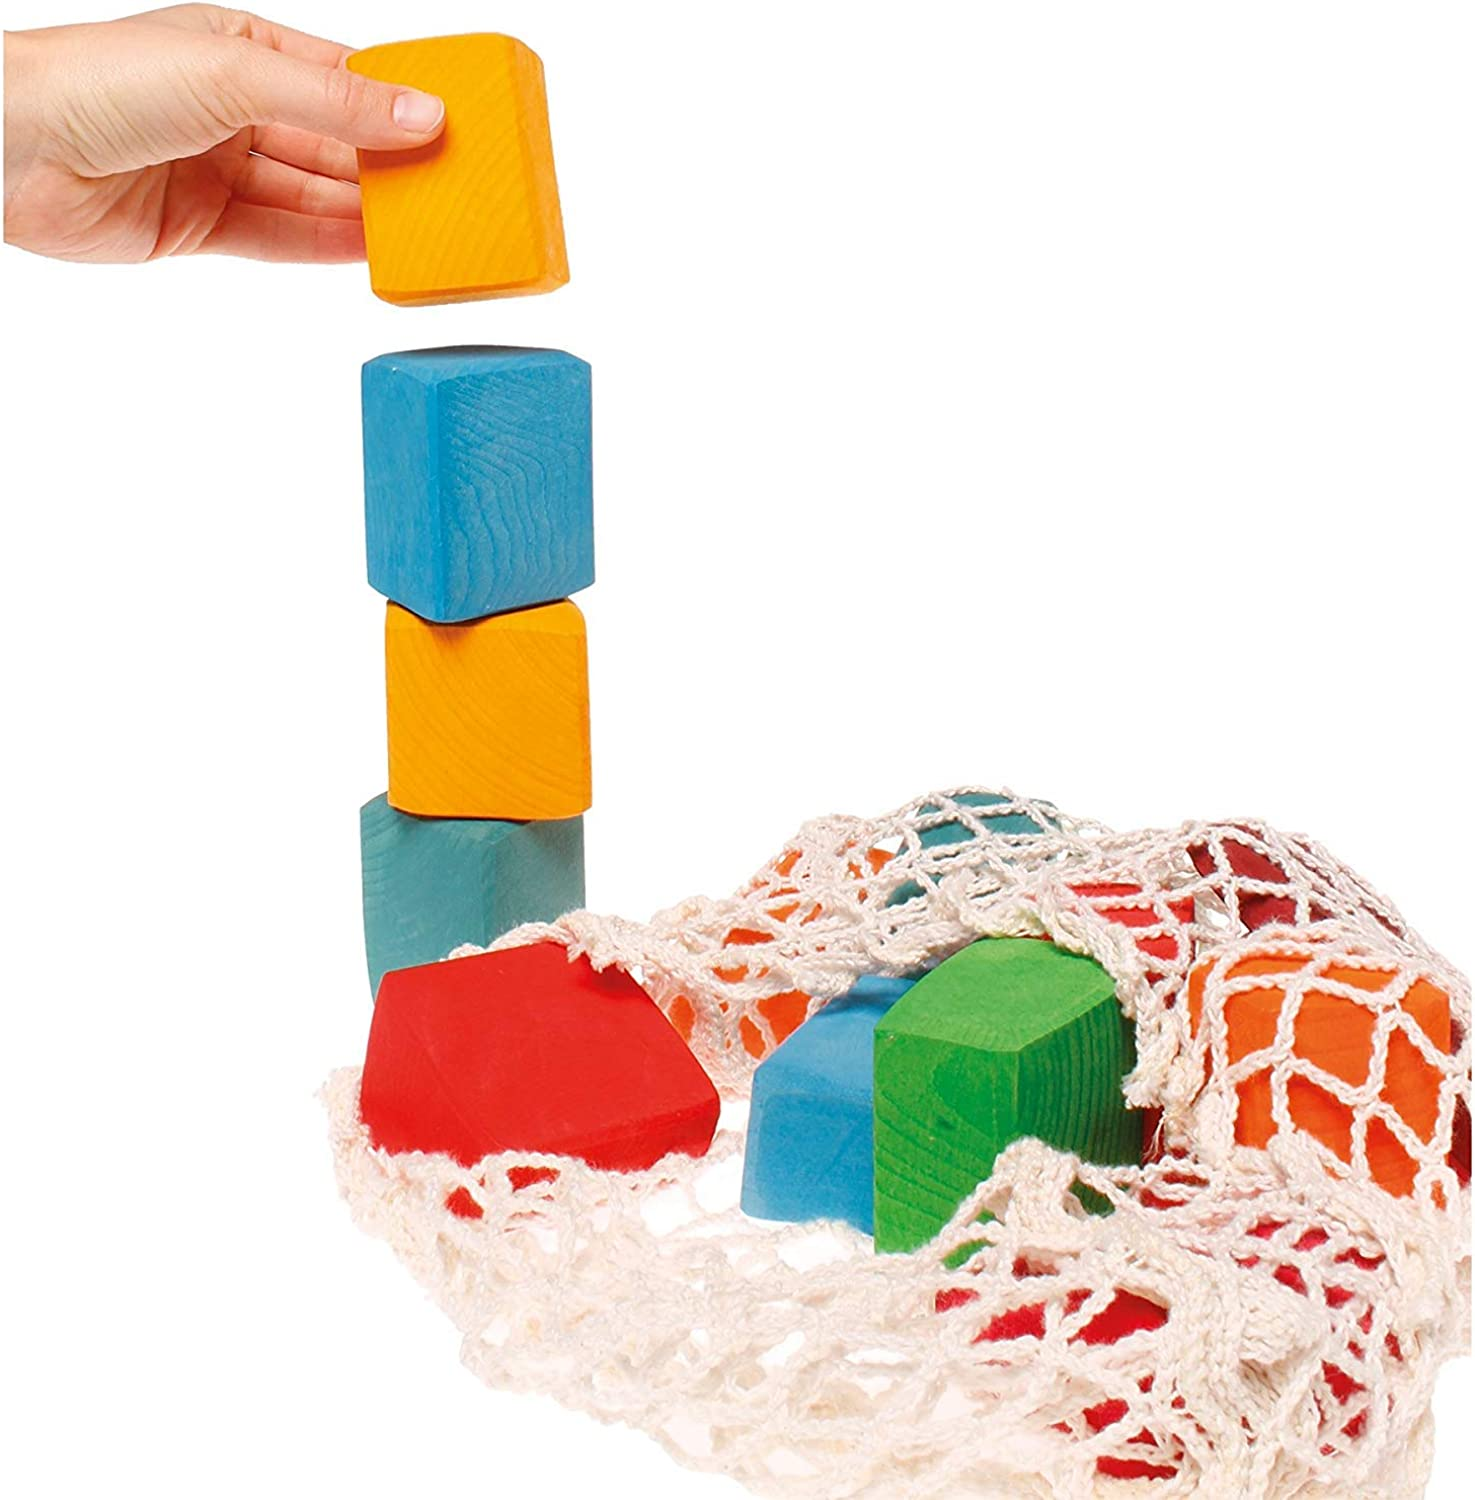 Grimm's Large Waldorf Building Blocks, Set of 15 Organically-Shaped Wooden Blocks (colord)